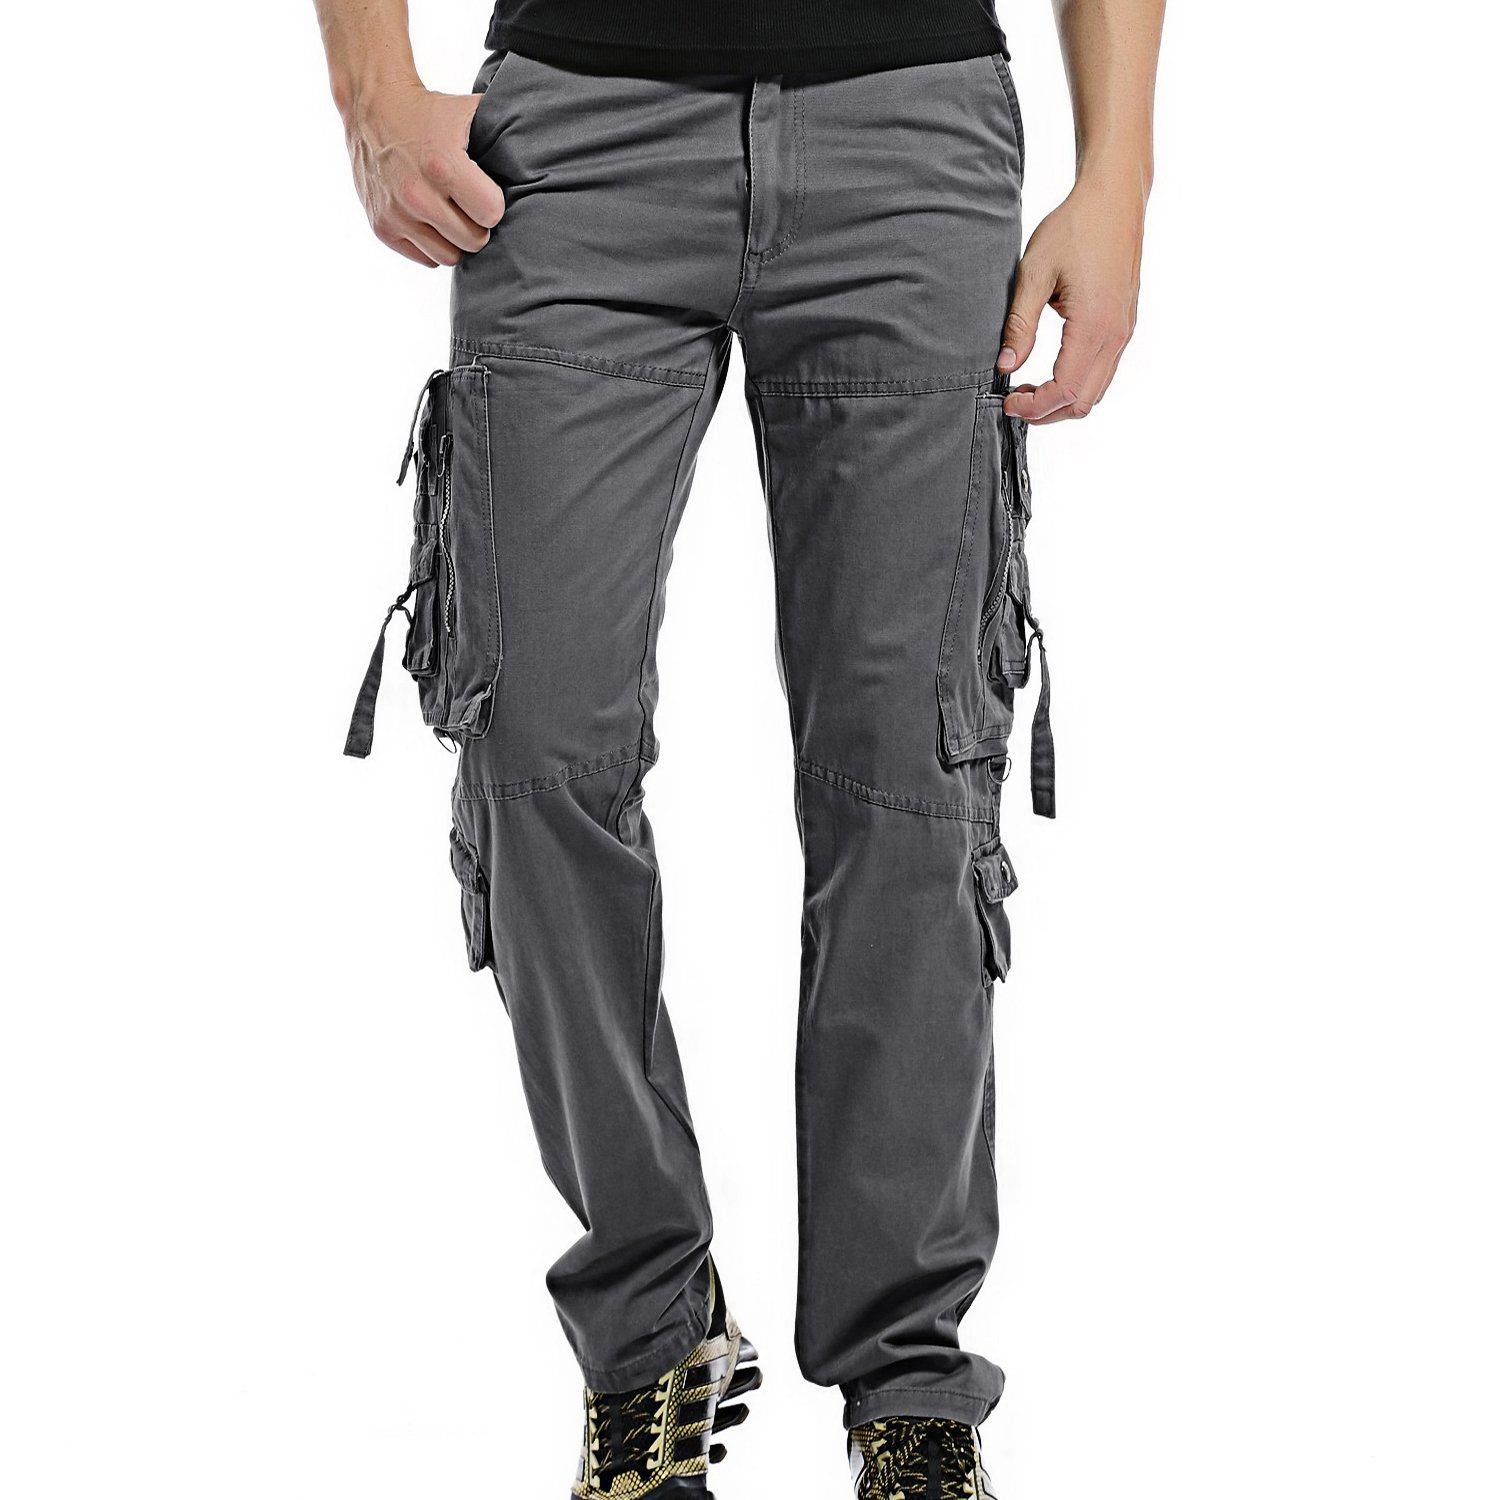 Hycsen Men's Wild Cargo Pants